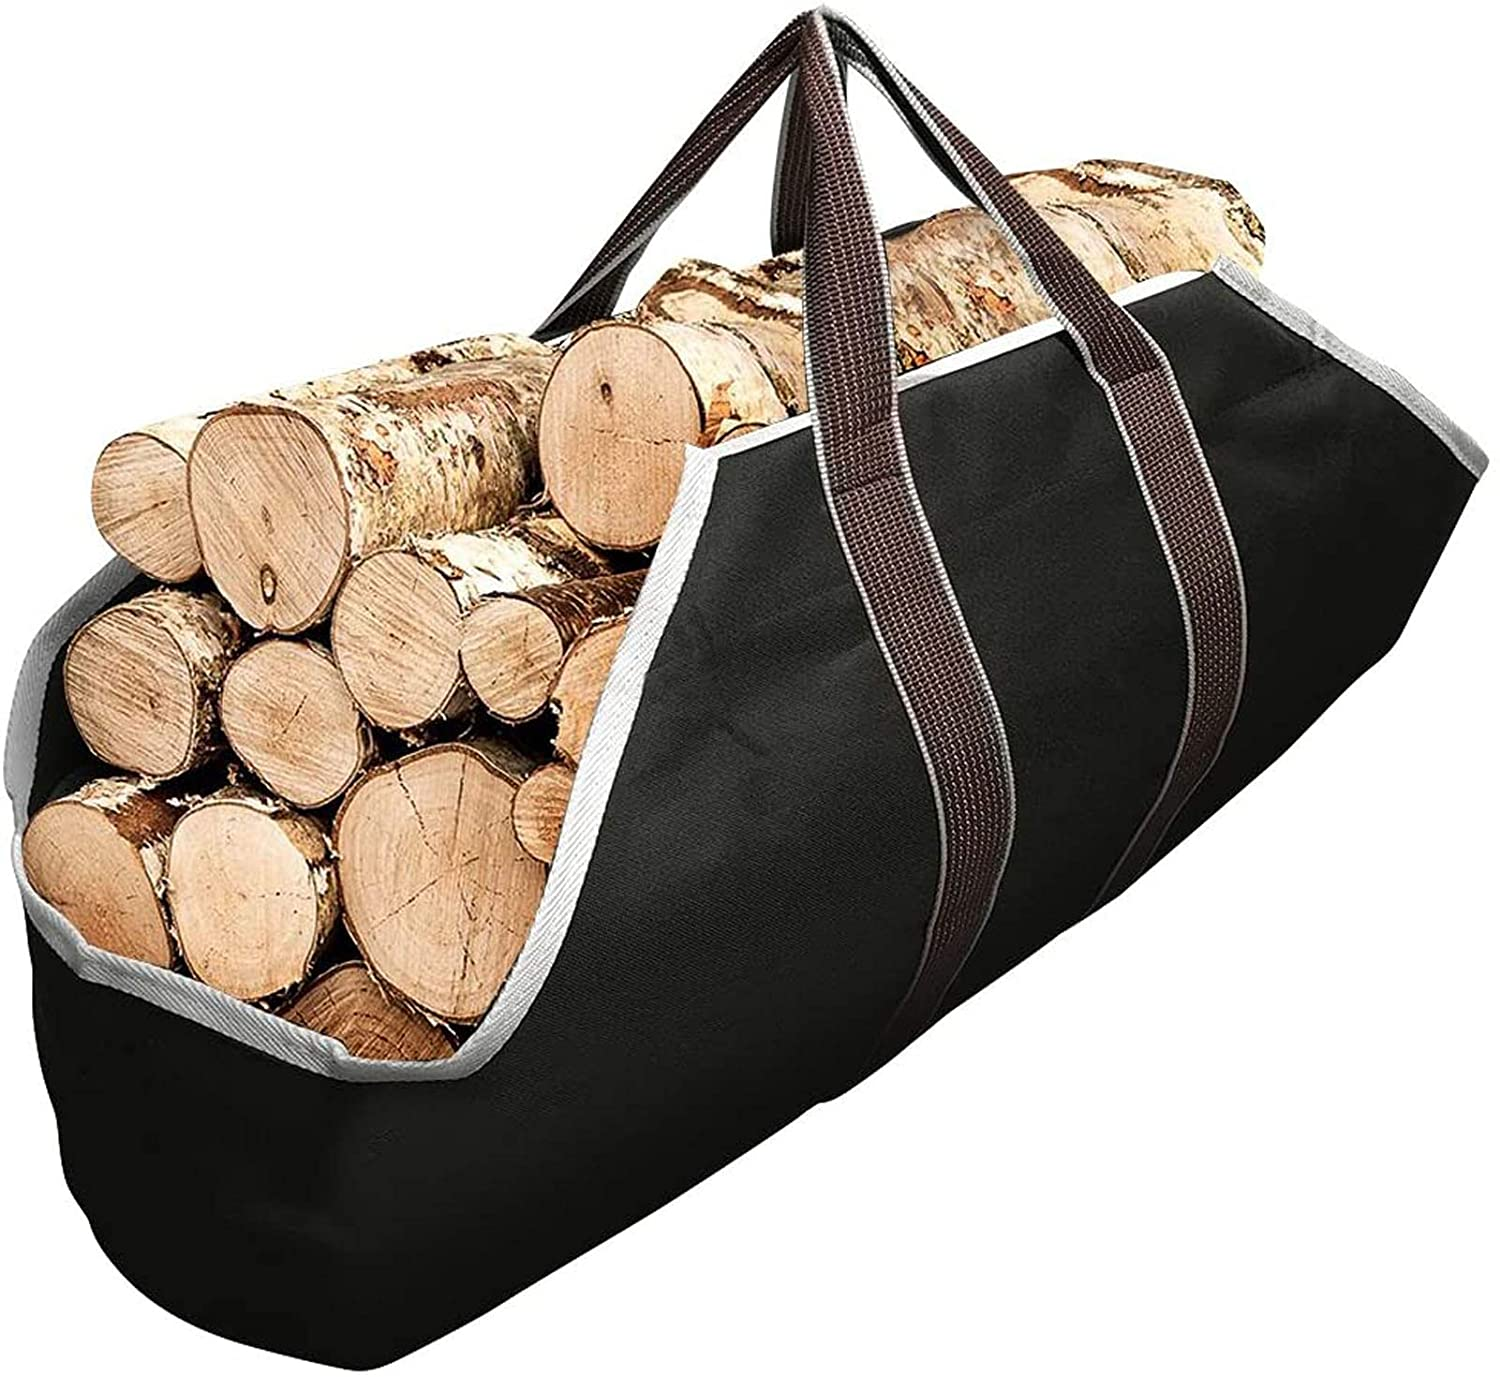 ZQTHL Fireplace Firewood Totes, Large Capacity Log Tote Bag for Wood Carrying,with Handles Security Strap,for Outdoor Tubular Birchwood Stand by Hearth Stove Tools Set Basket